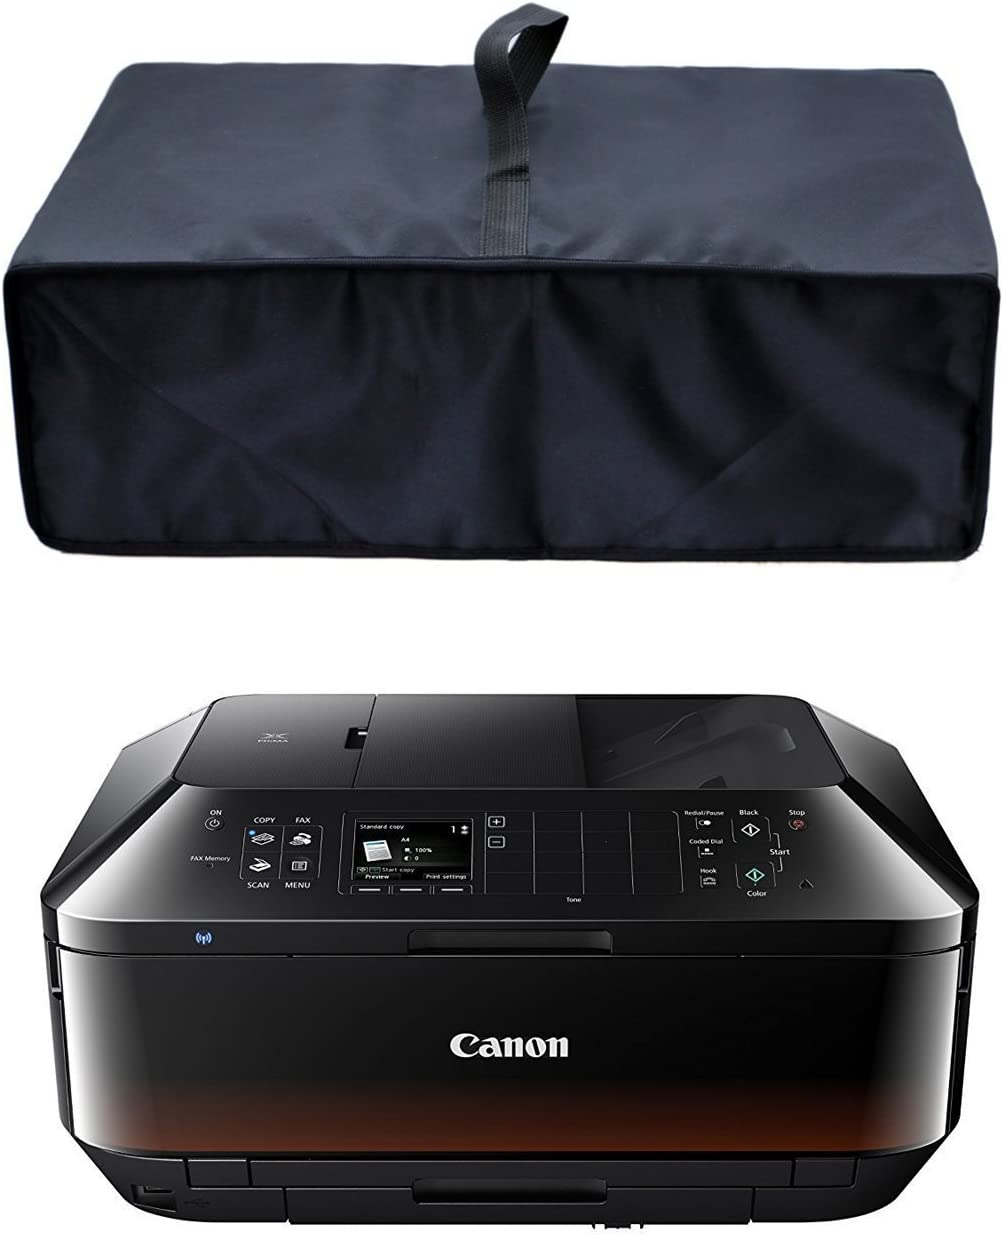 CYGQ Nylon Fabric Antistatic Water Resistant Printer Dust Cover Case Compatible with Canon MX922/MX492/MX532 All-in-One Printer